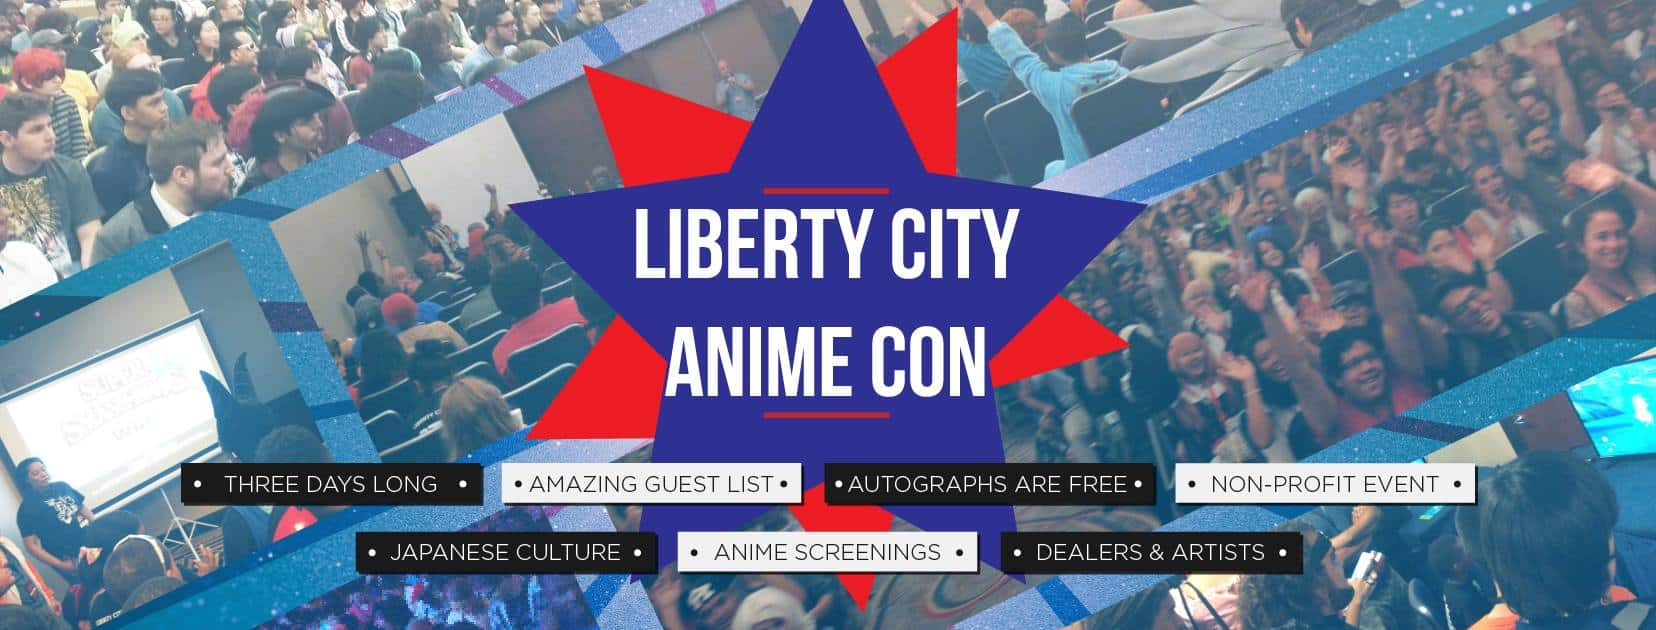 Liberty City Anime Con logo